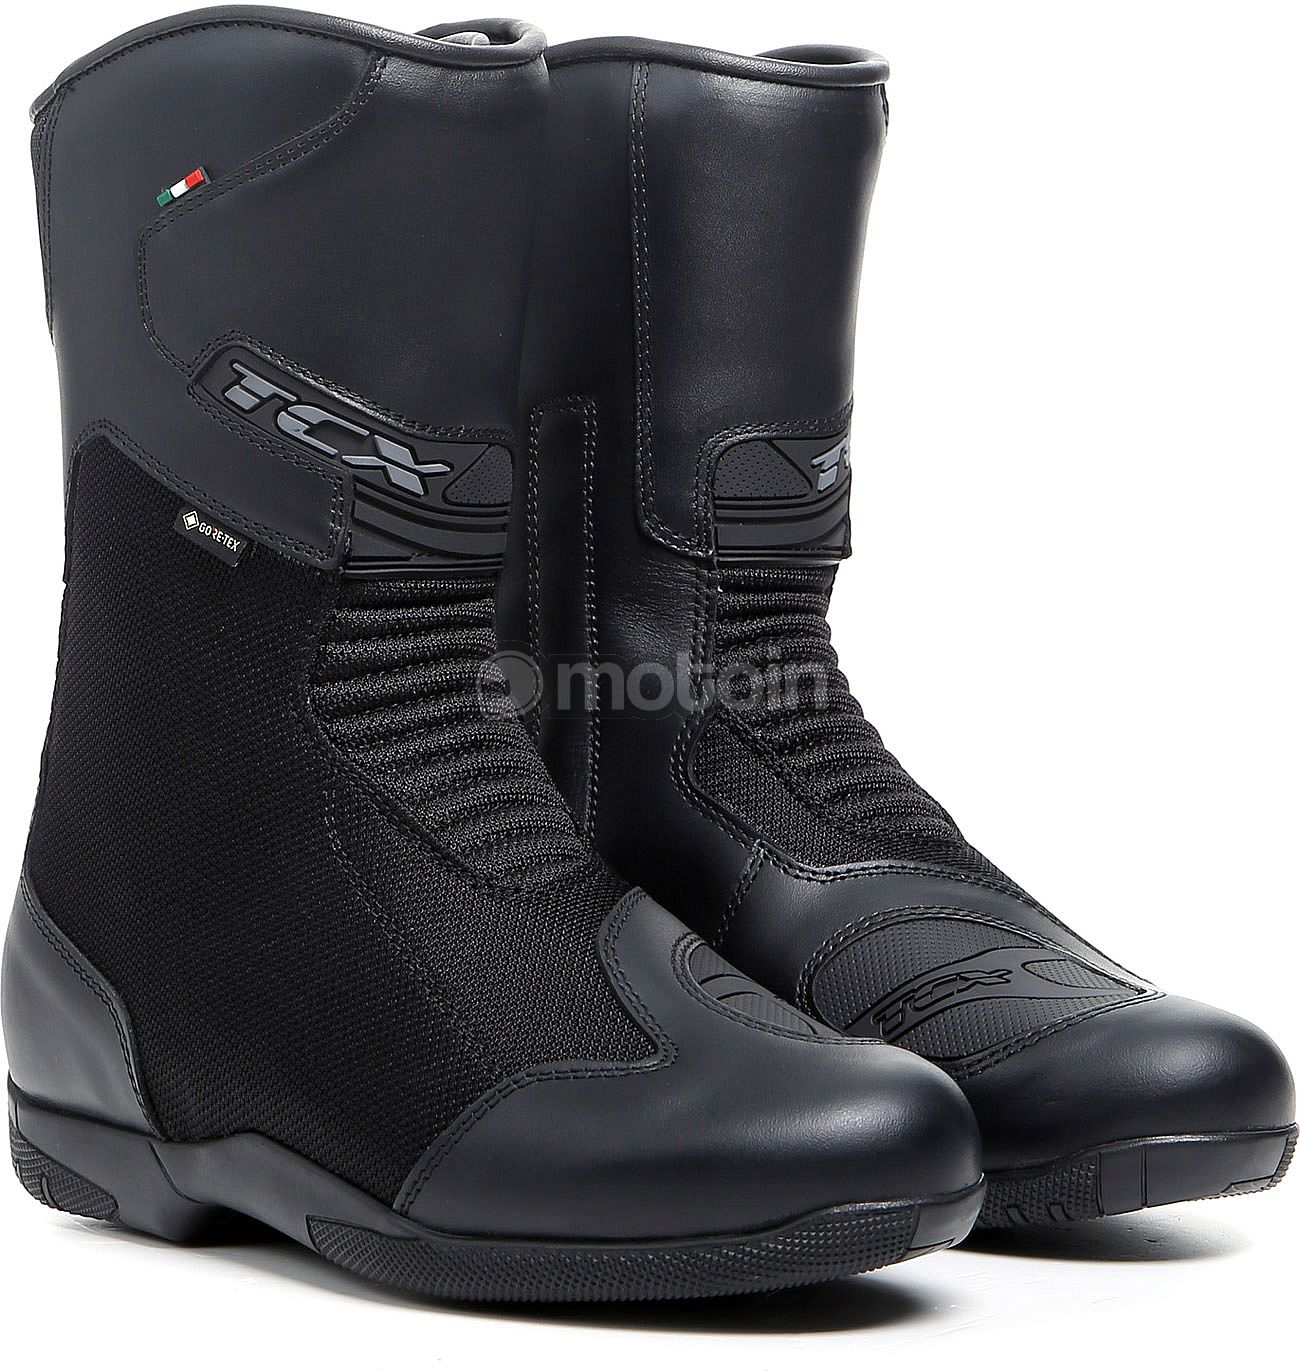 tcx tourer stiefel gore tex damen. Black Bedroom Furniture Sets. Home Design Ideas